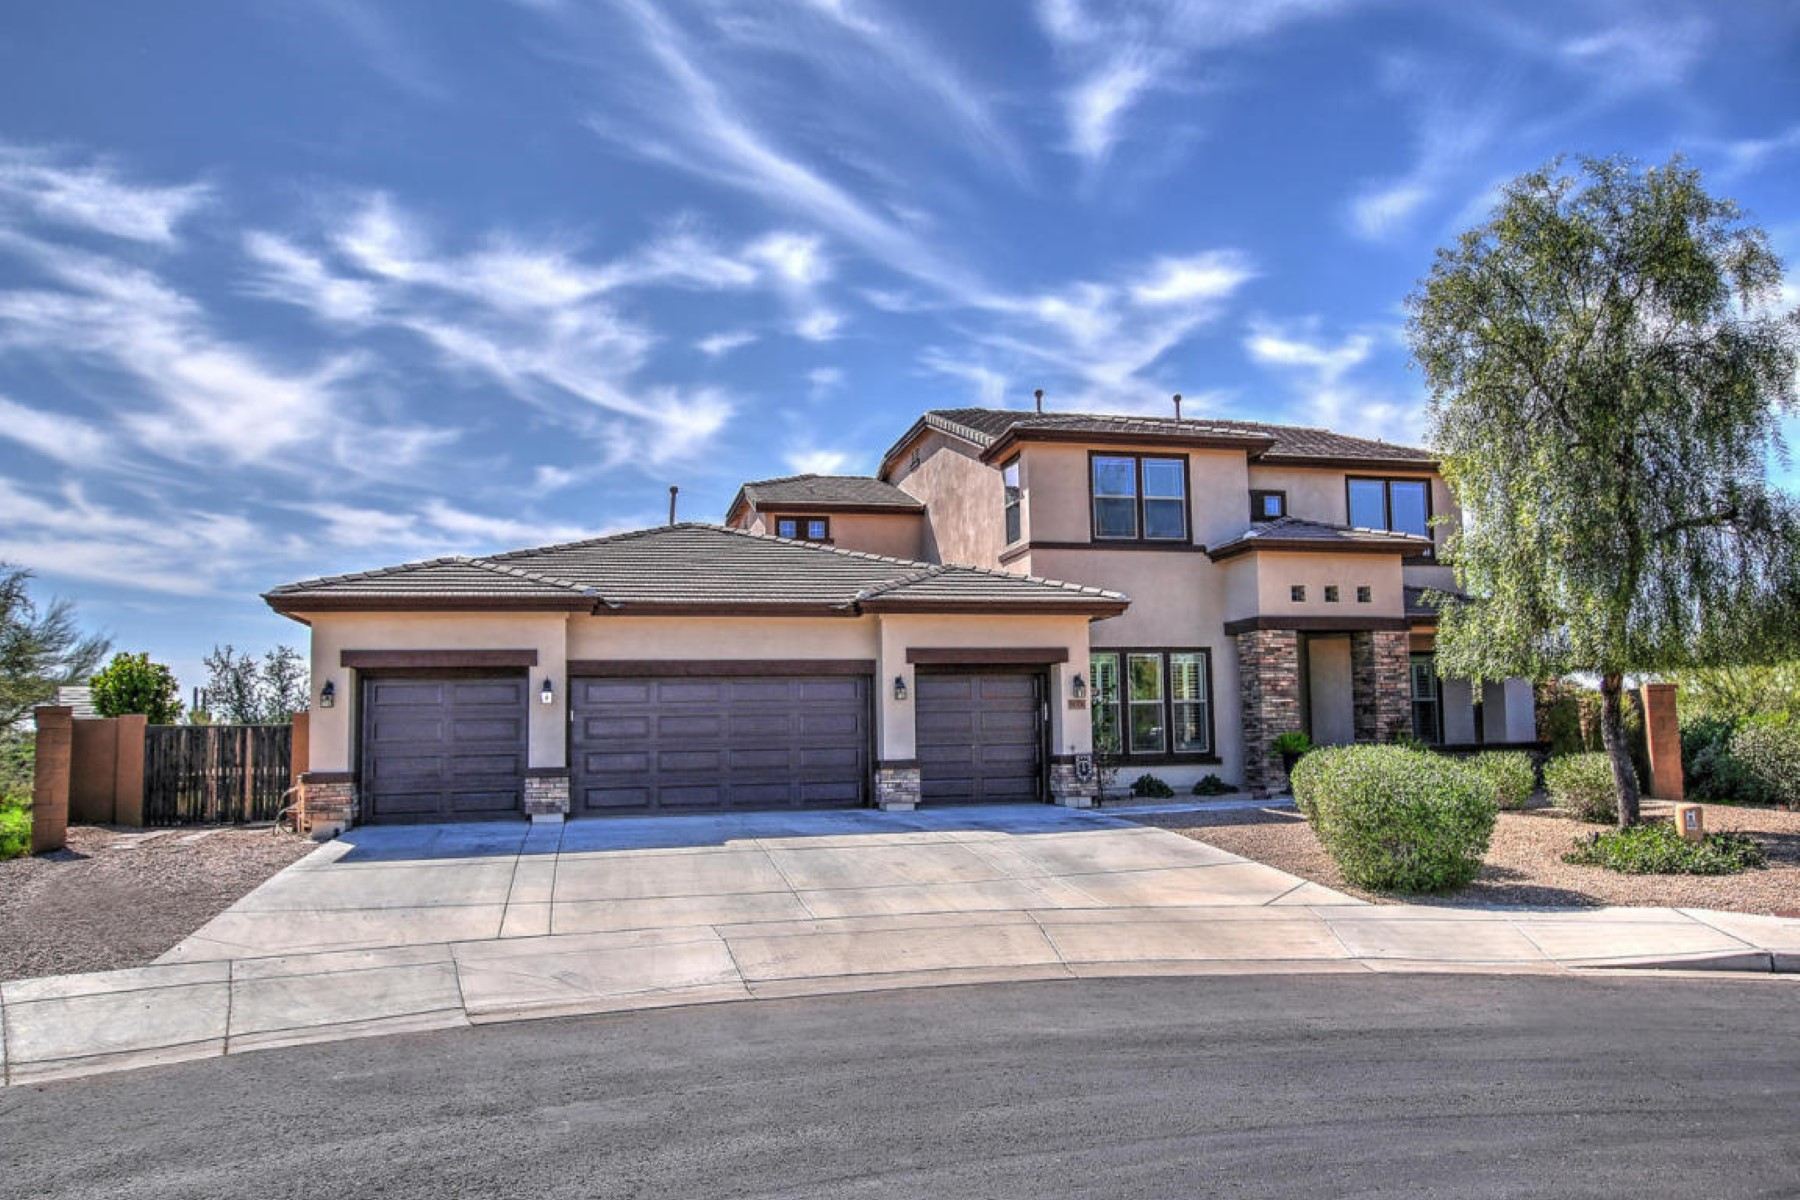 Single Family Home for Sale at Phenomenal gorgeous designer home 31706 N 15TH GLN Phoenix, Arizona, 85086 United States